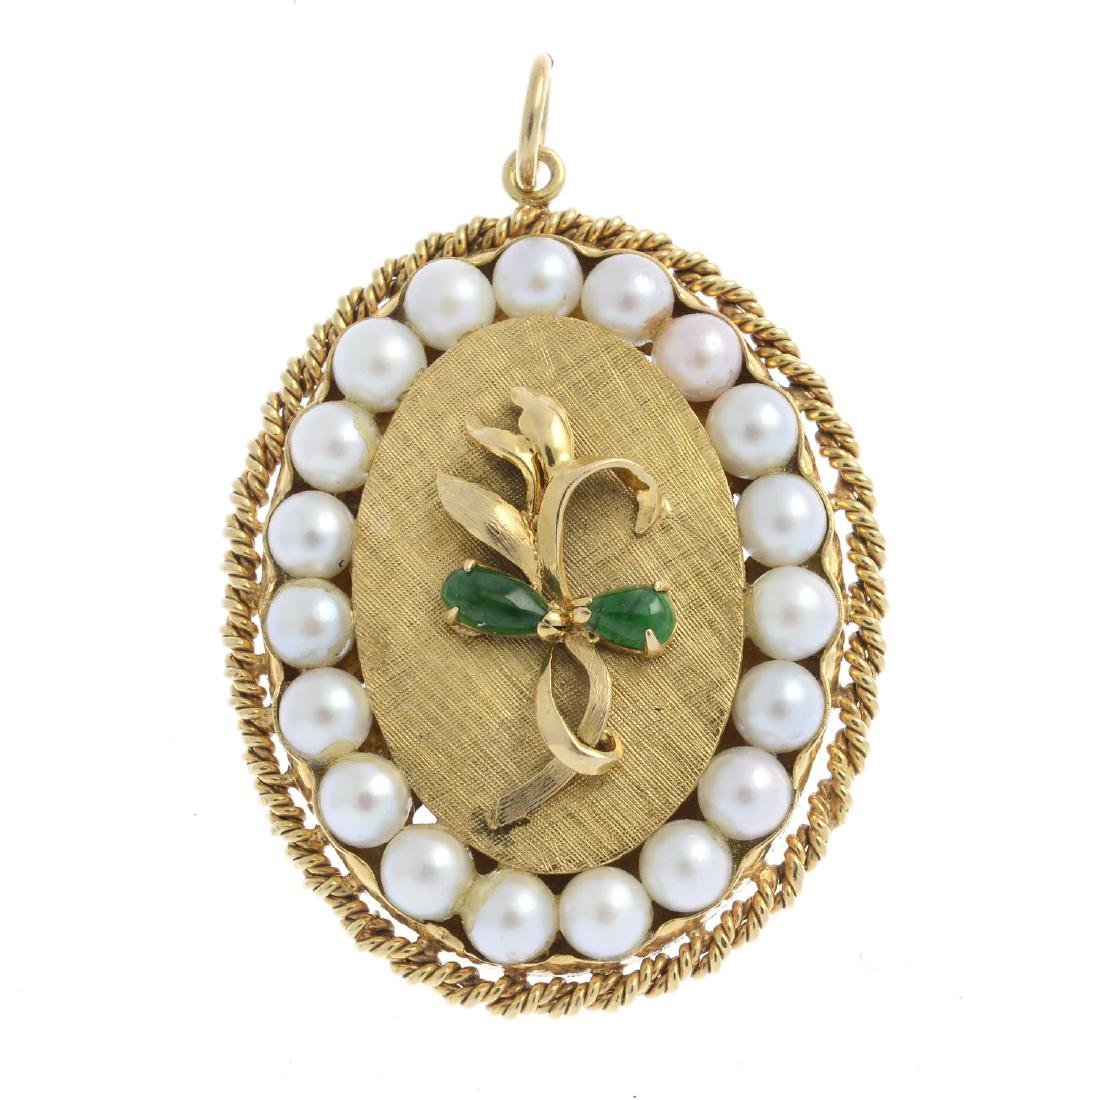 A jade and cultured pearl pendant. The pear-shape